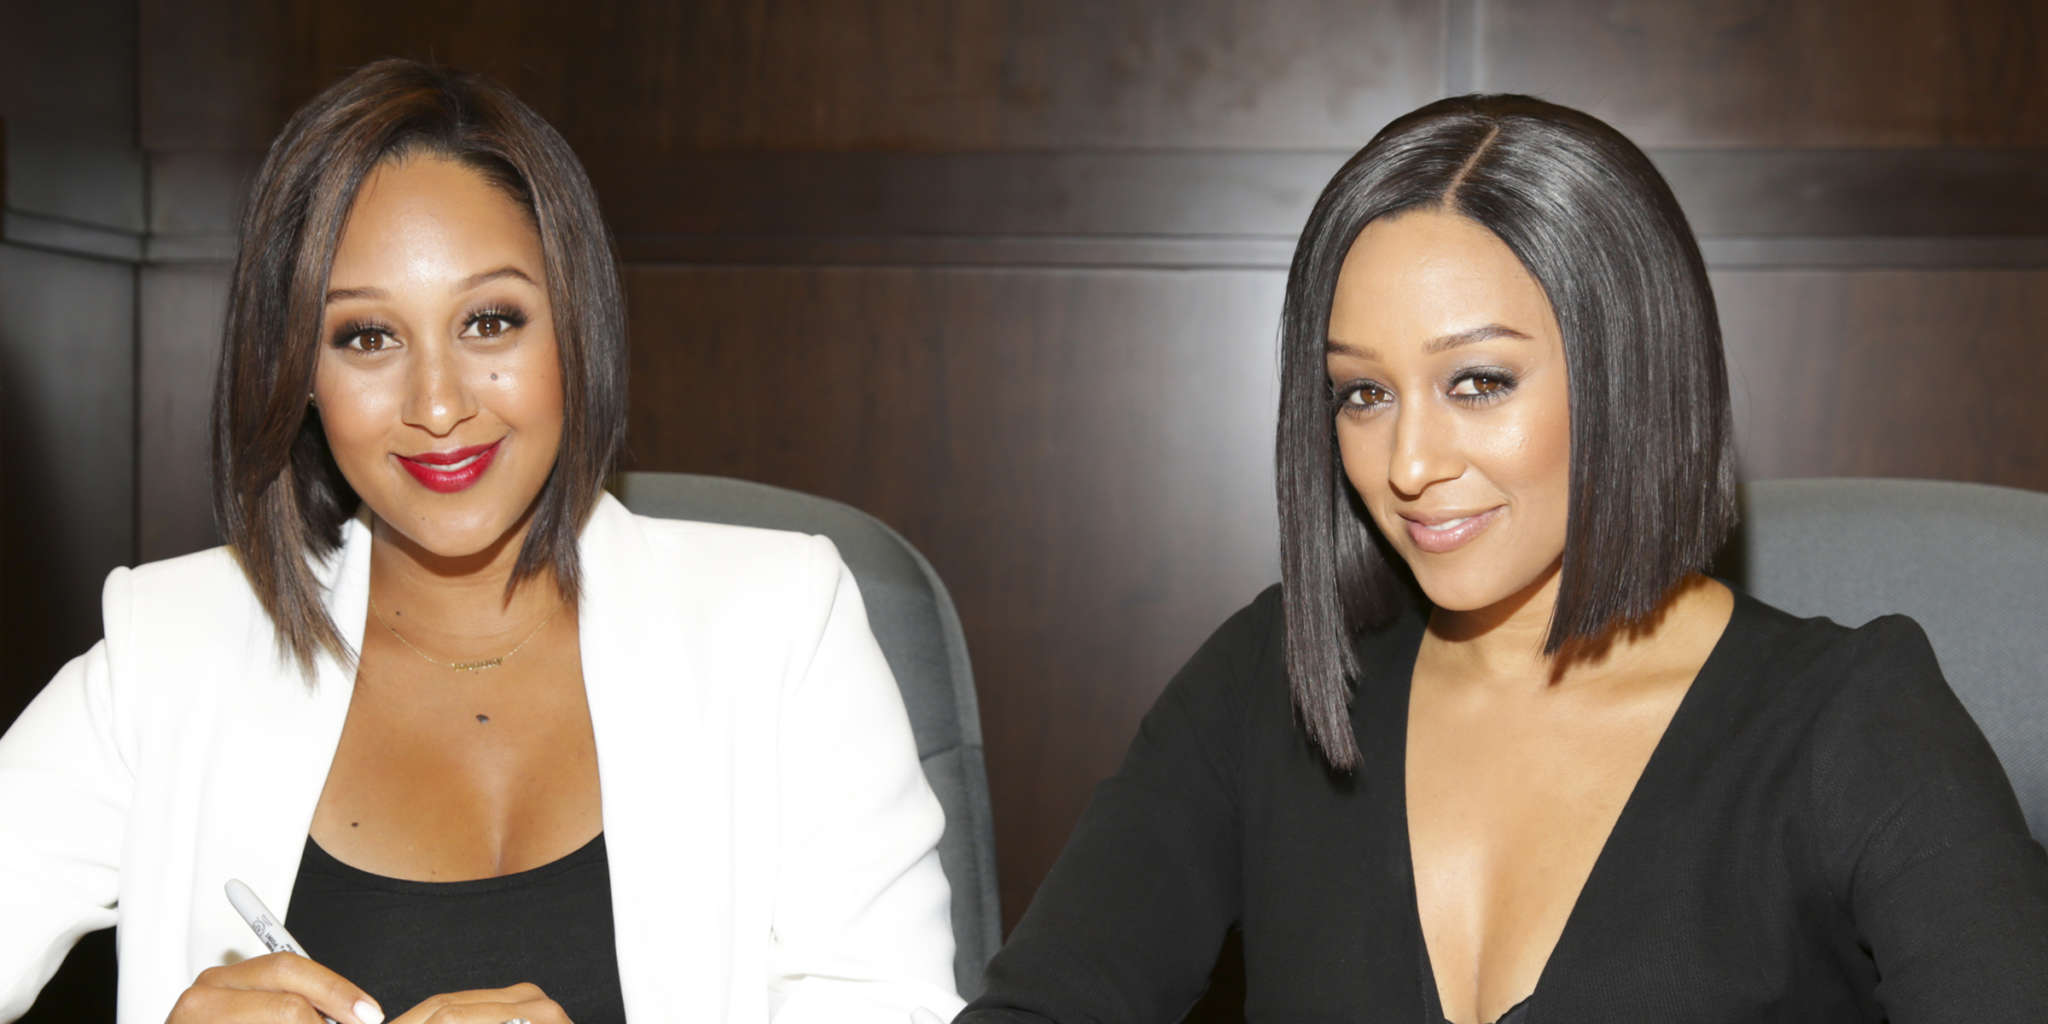 tia-and-tamera-mowry-have-not-seen-each-other-in-six-months-twins-bracing-for-tearful-reunion